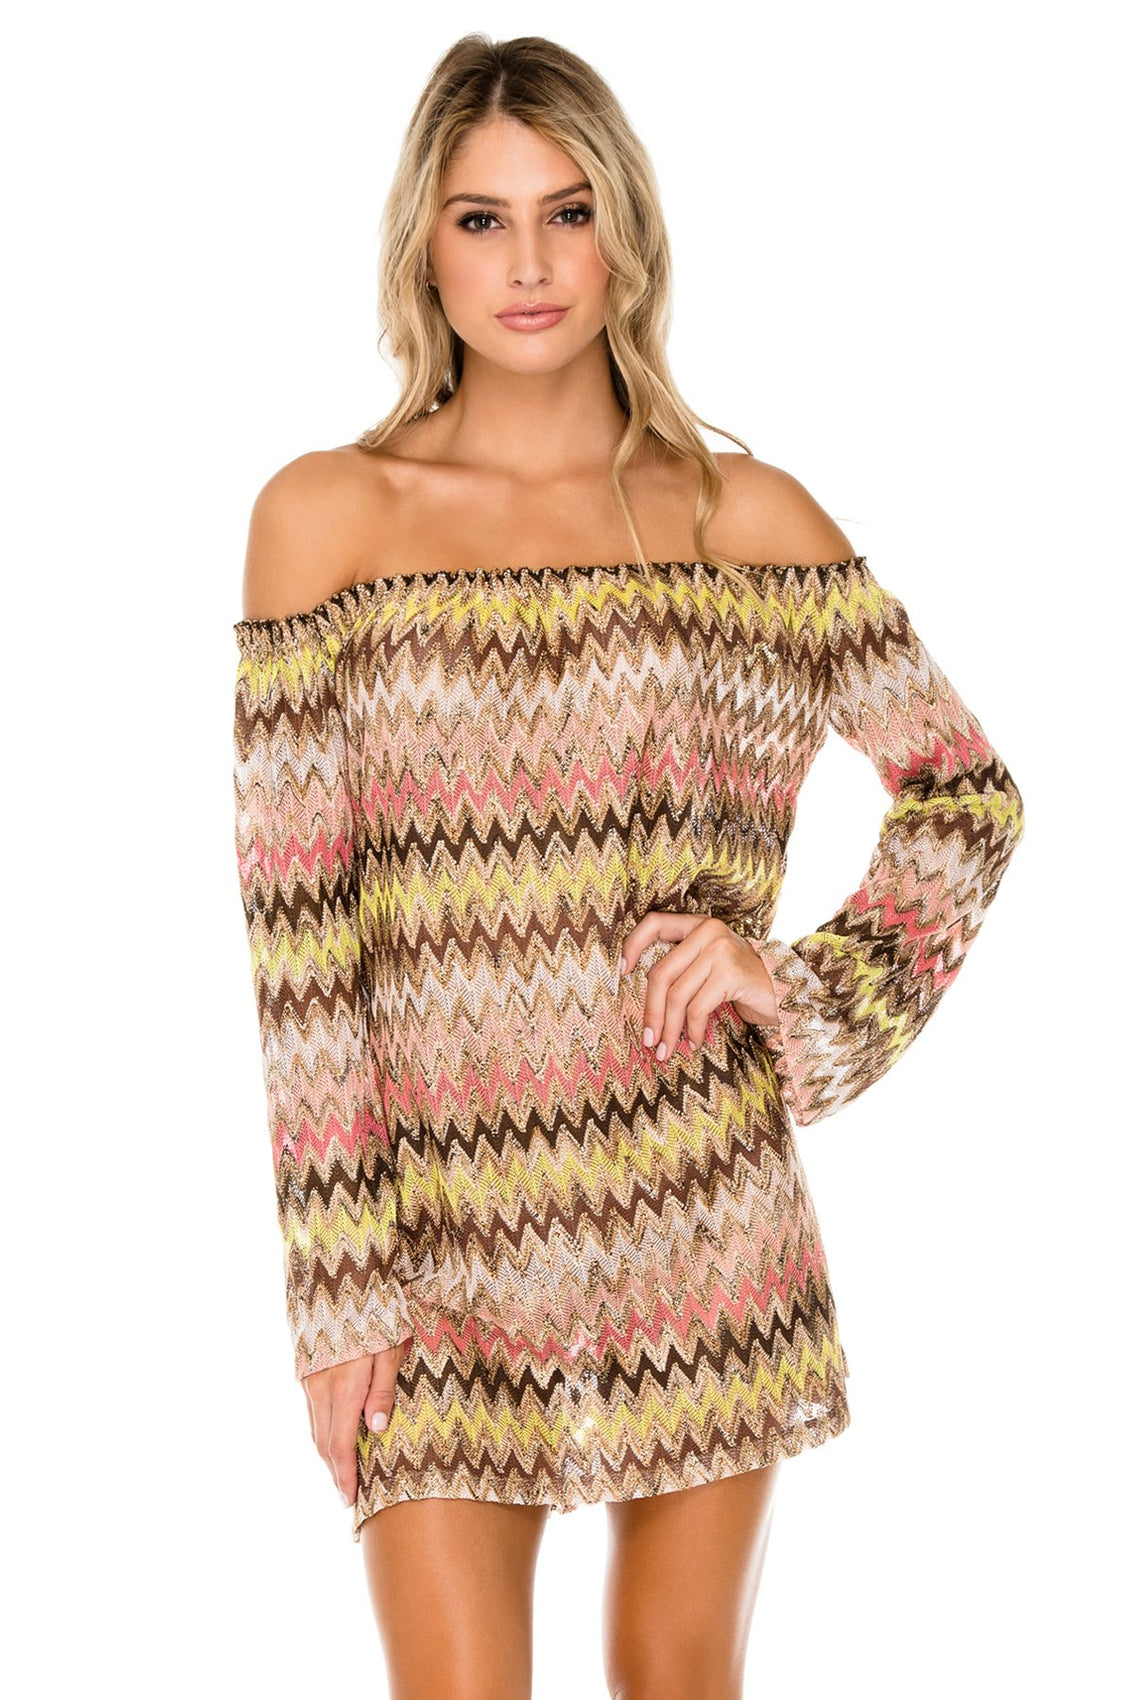 PONDEROSA - Cuff Bell Sleeve Dress • Multicolor